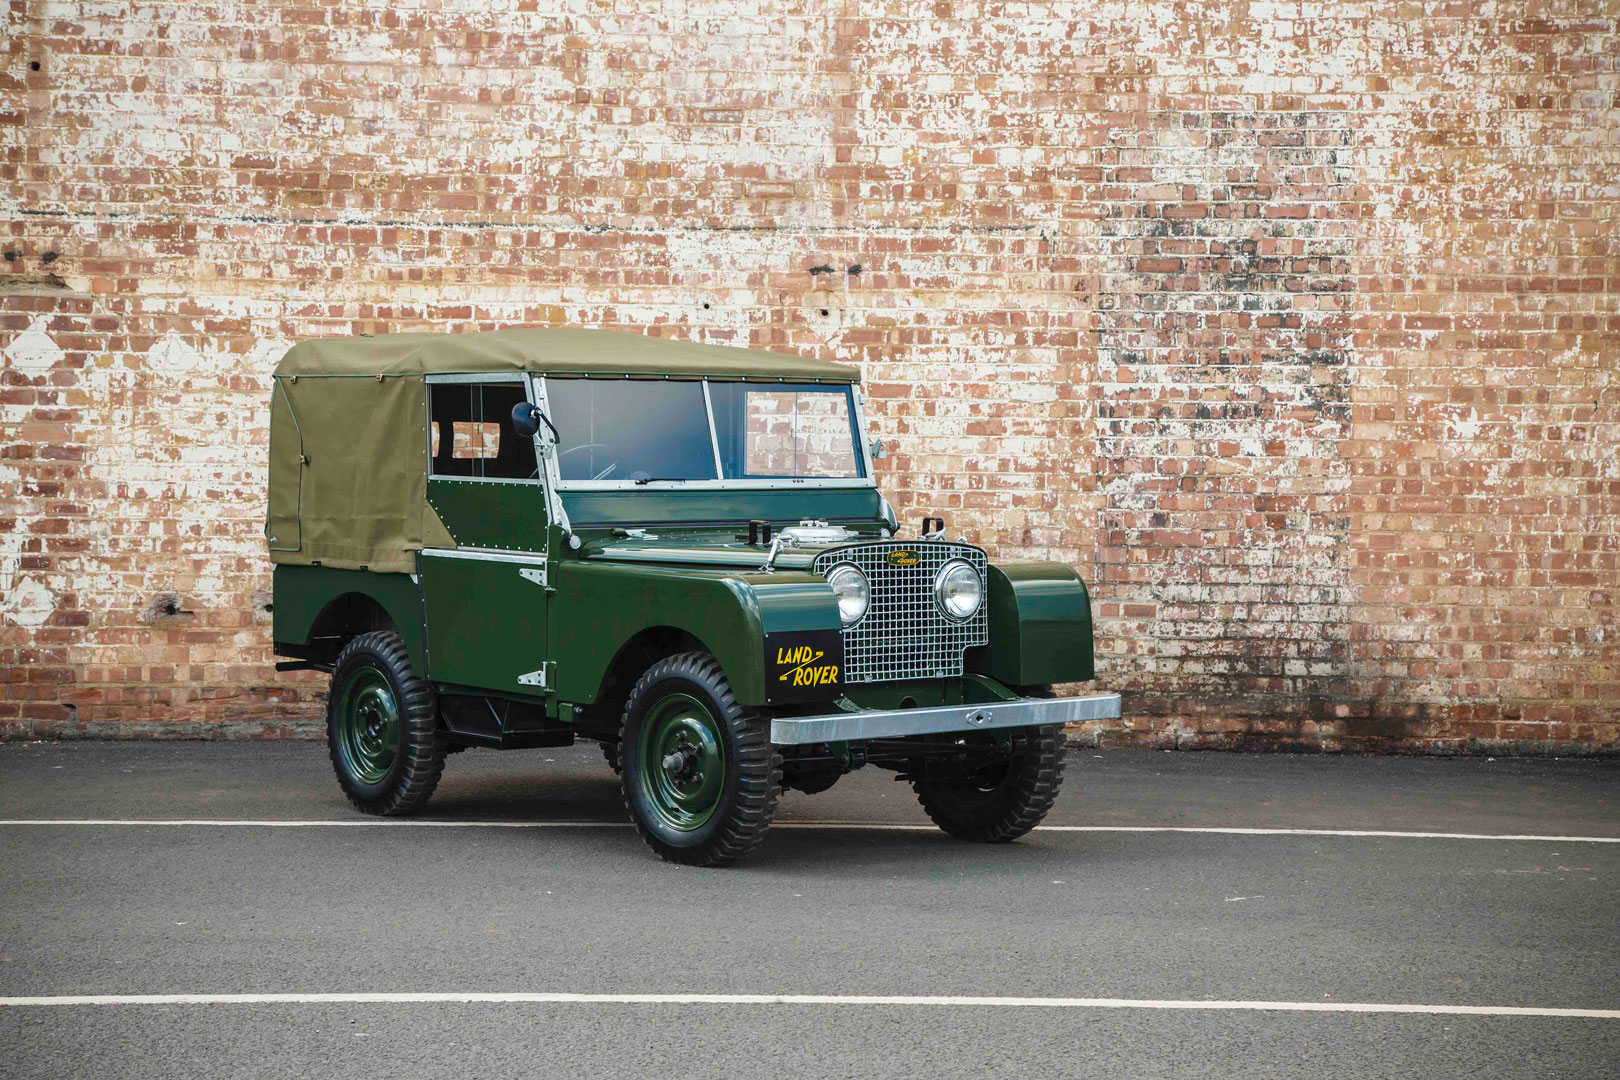 Factory restored 1948 Series 1 Land Rover from Techno Classica 2016